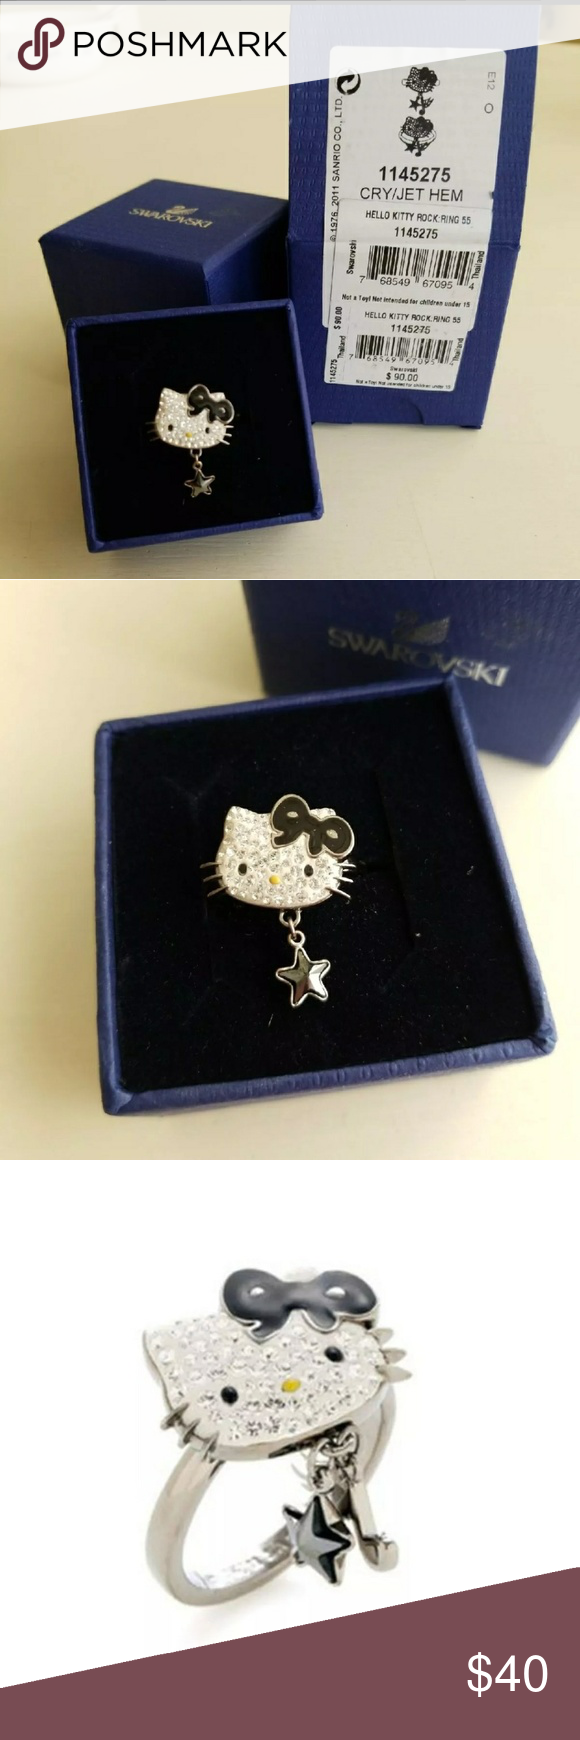 0379d9a15 Swarovski Hello Kitty Rock Star Ring Size 55 = US size 7 Paid $90. This